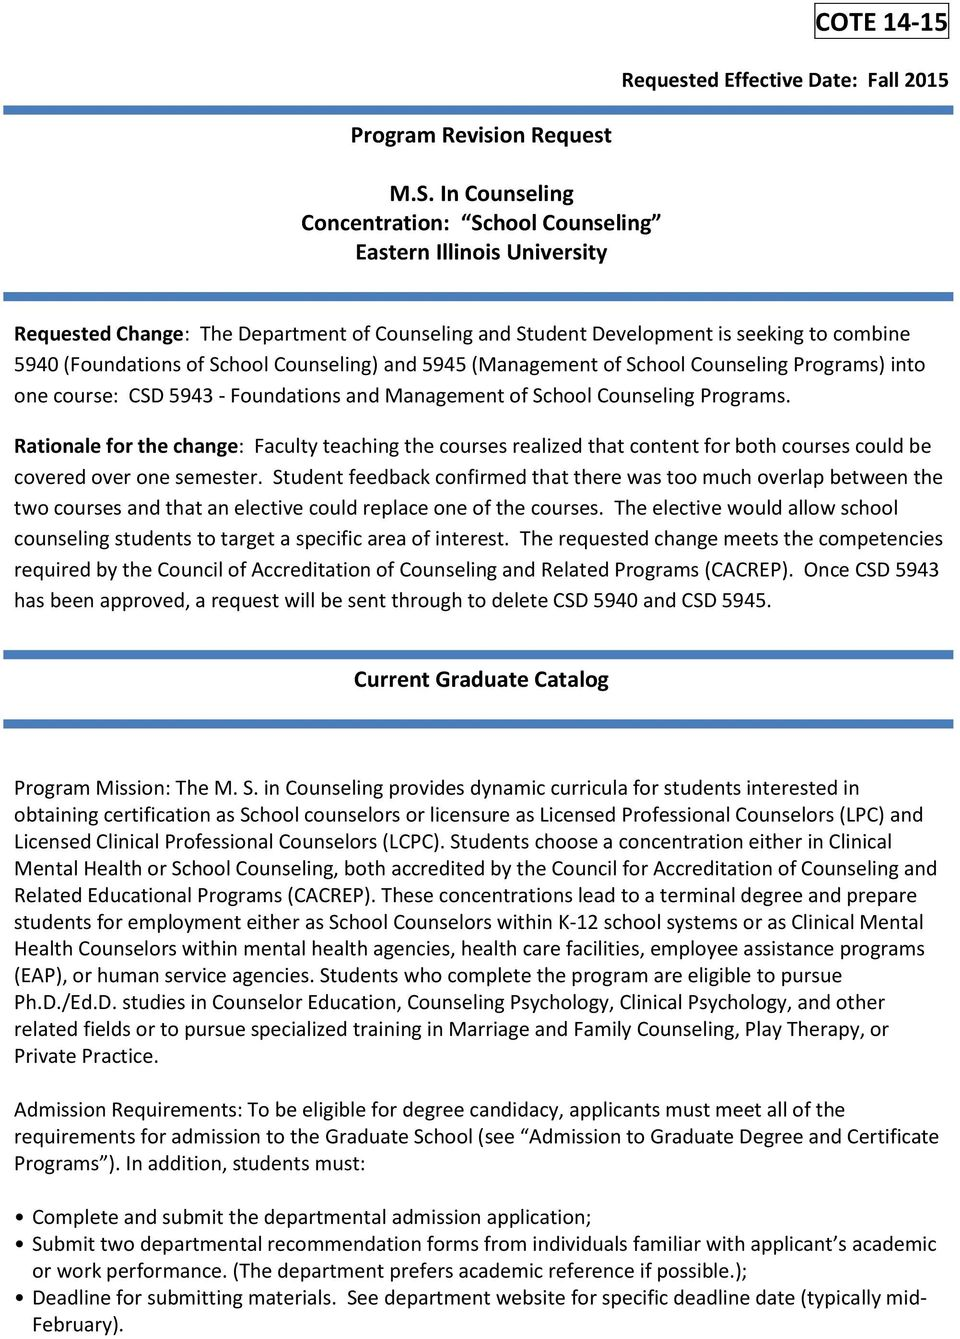 Counseling) and 5945 (Management of School Counseling Programs) into one course: CSD 5943 - Foundations and Management of School Counseling Programs.